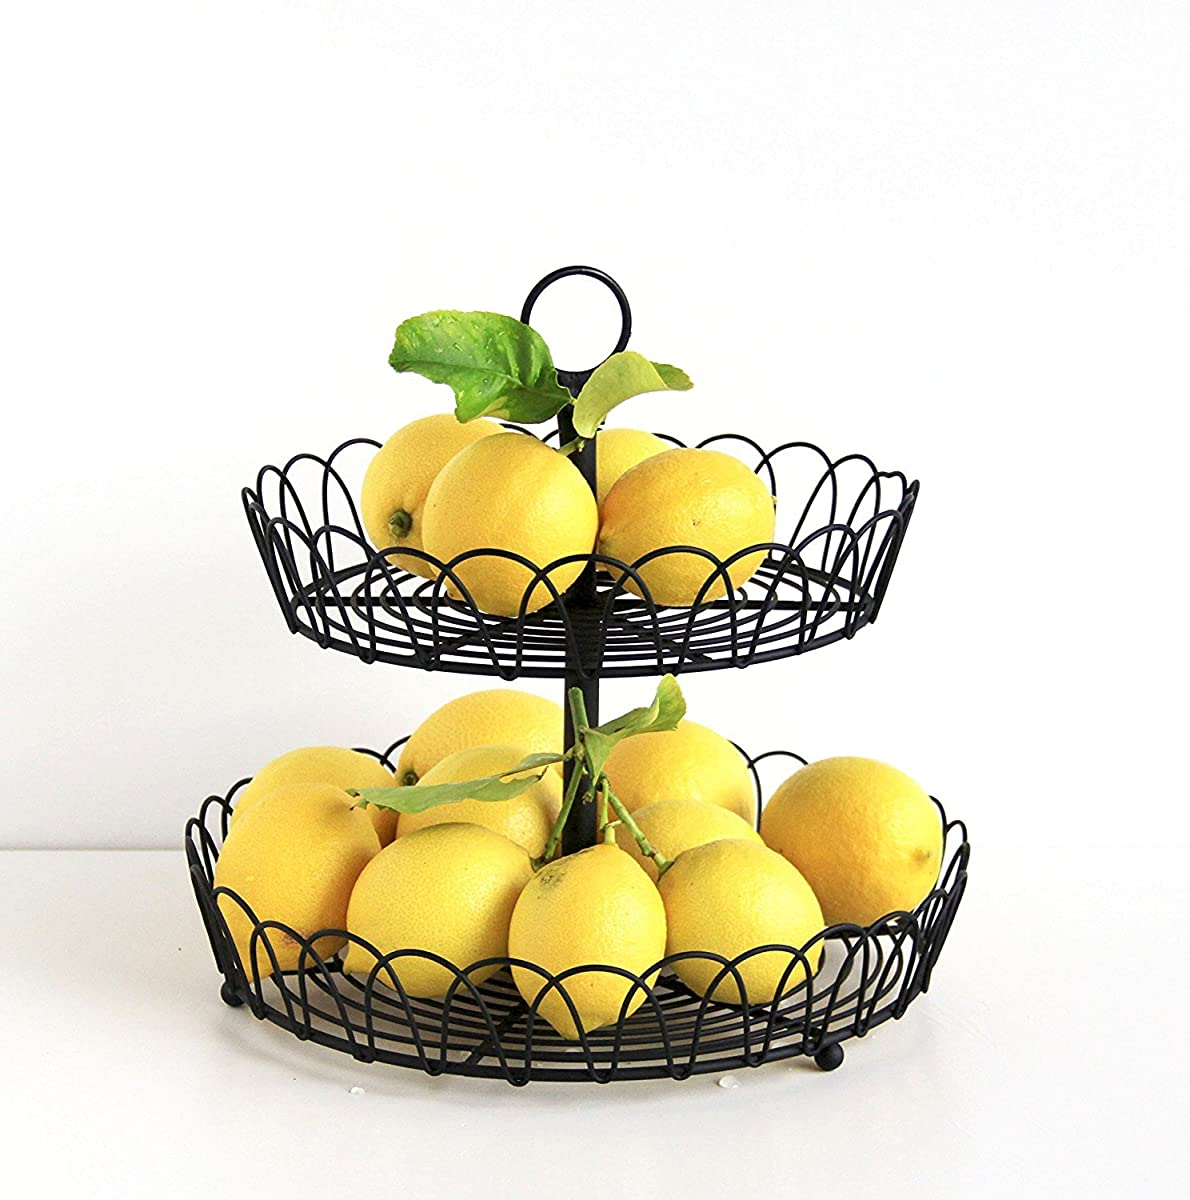 Tagway Home Black Metal 2-Tiered Stand, Fruit Storage, Display Basket, Countertop Organizer